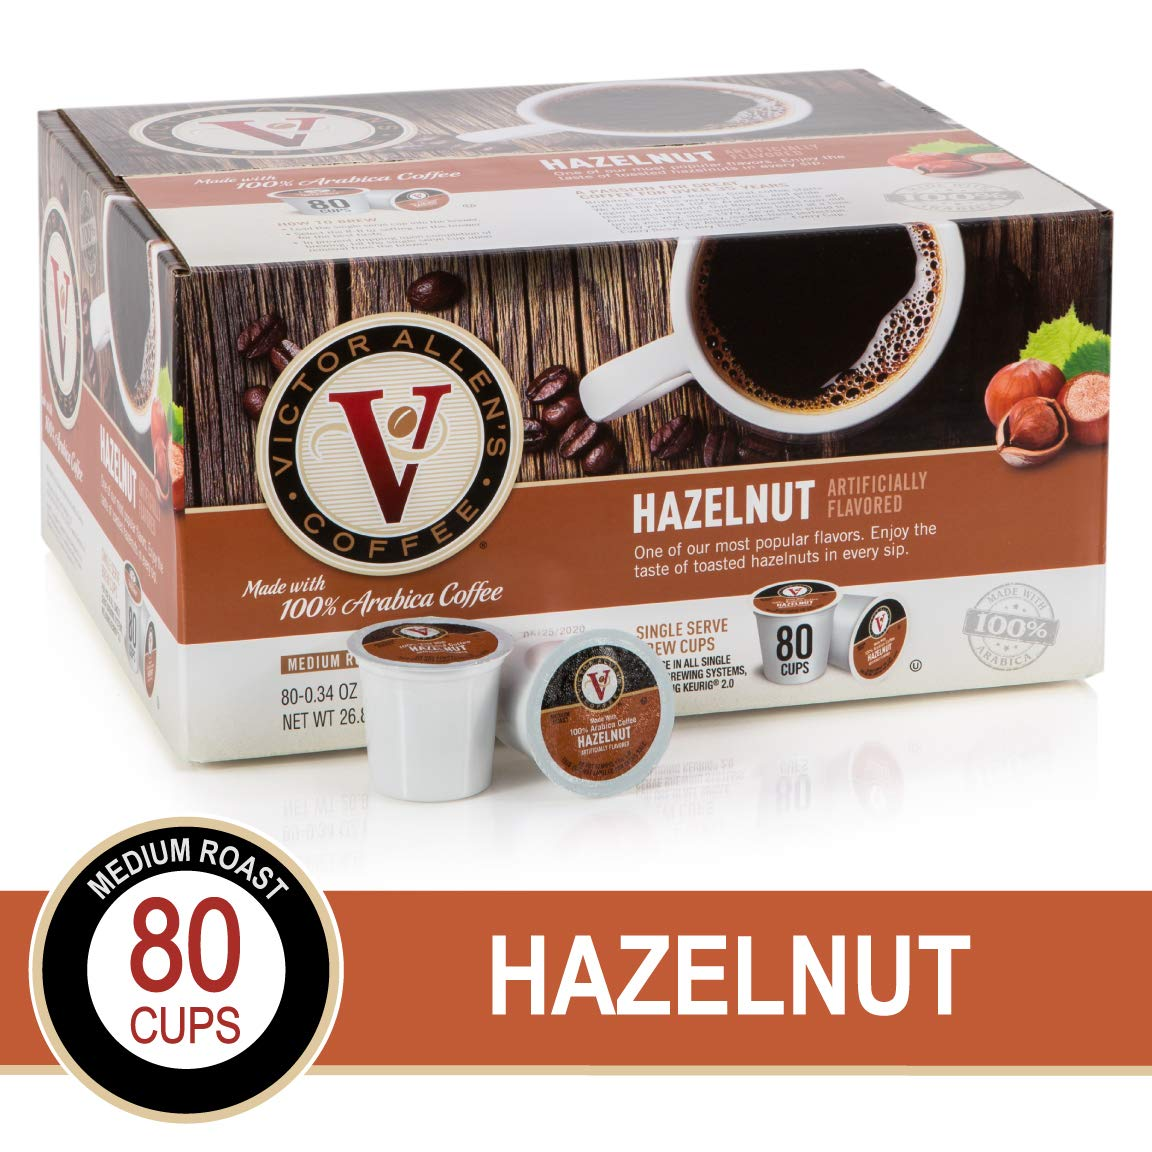 Hazelnut for K-Cup Keurig 2.0 Brewers, 80 Count, Victor Allen's Coffee Medium Roast Single Serve Coffee Pods